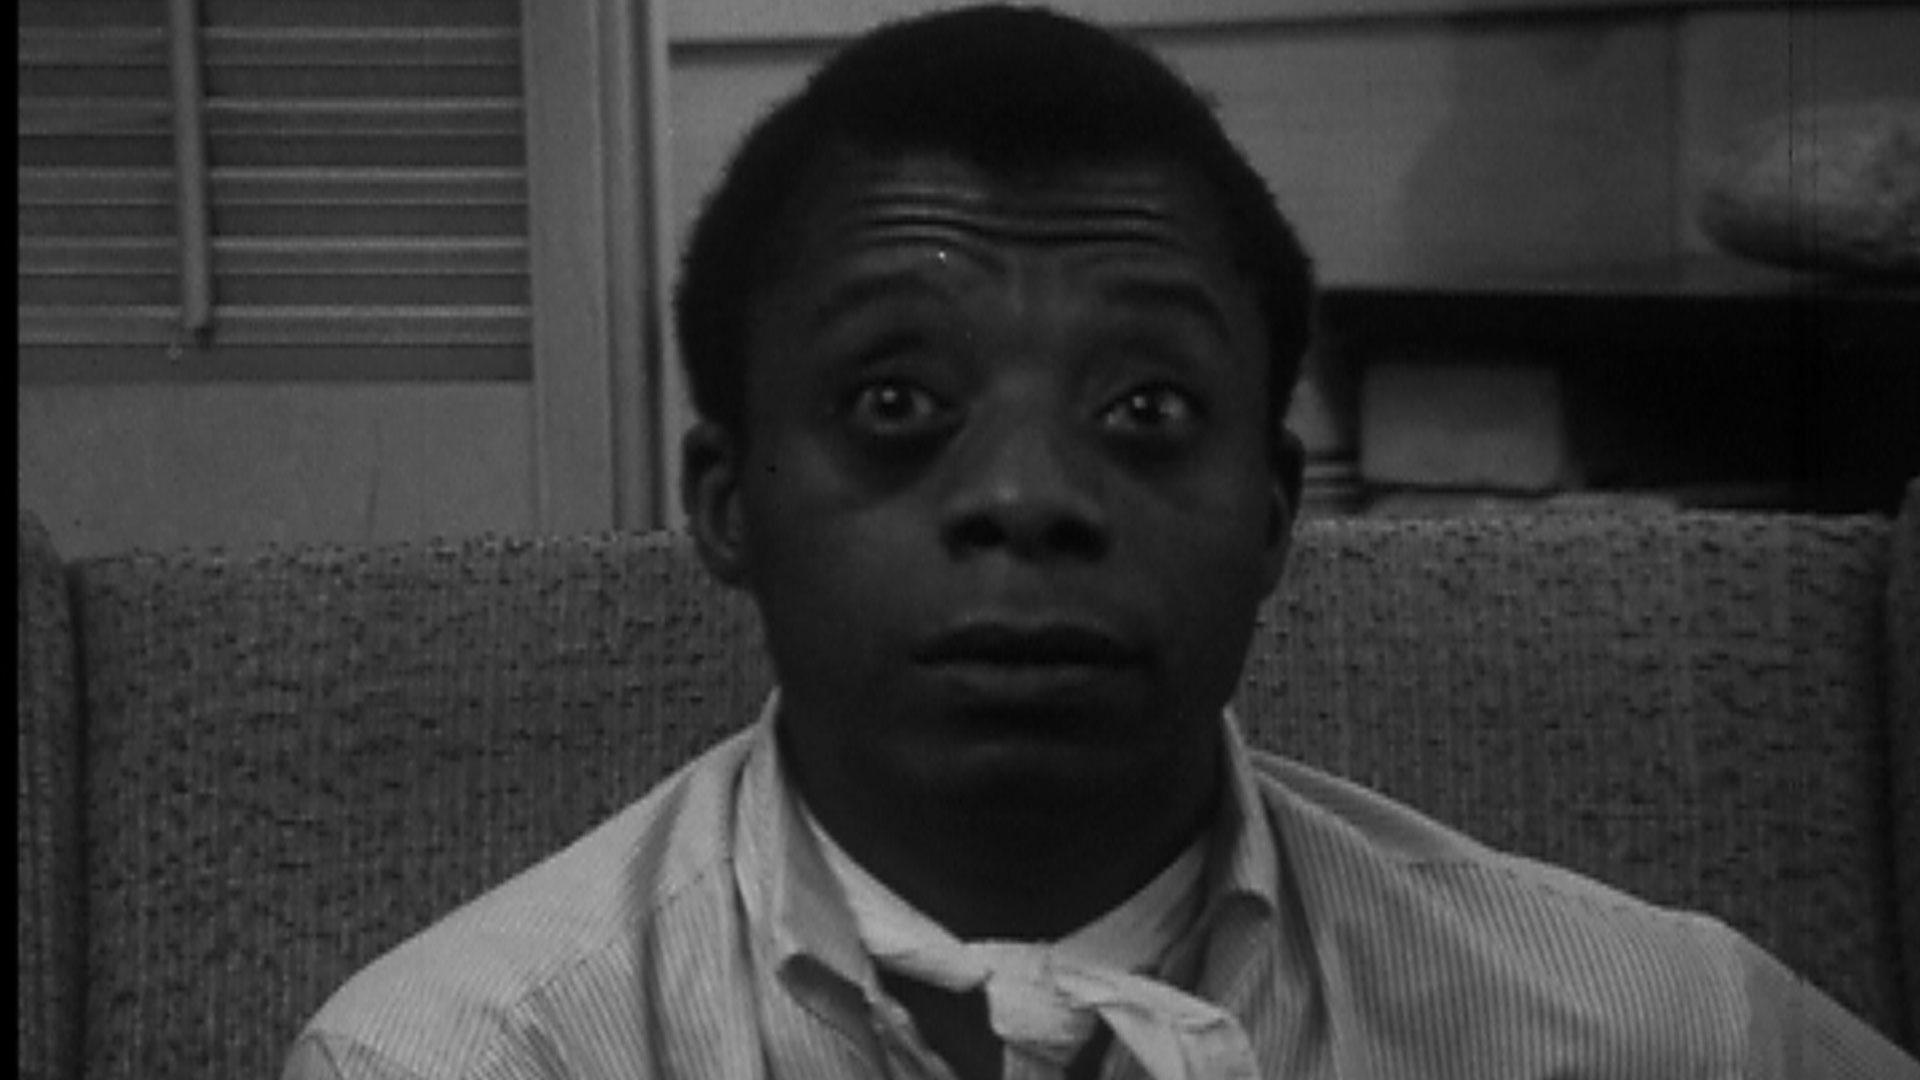 short essays by james baldwin Collected essays has 1,248 ratings and 63 reviews hadrian said: while i respect and admire james baldwin's fiction, i adore his essays i saw the librar.